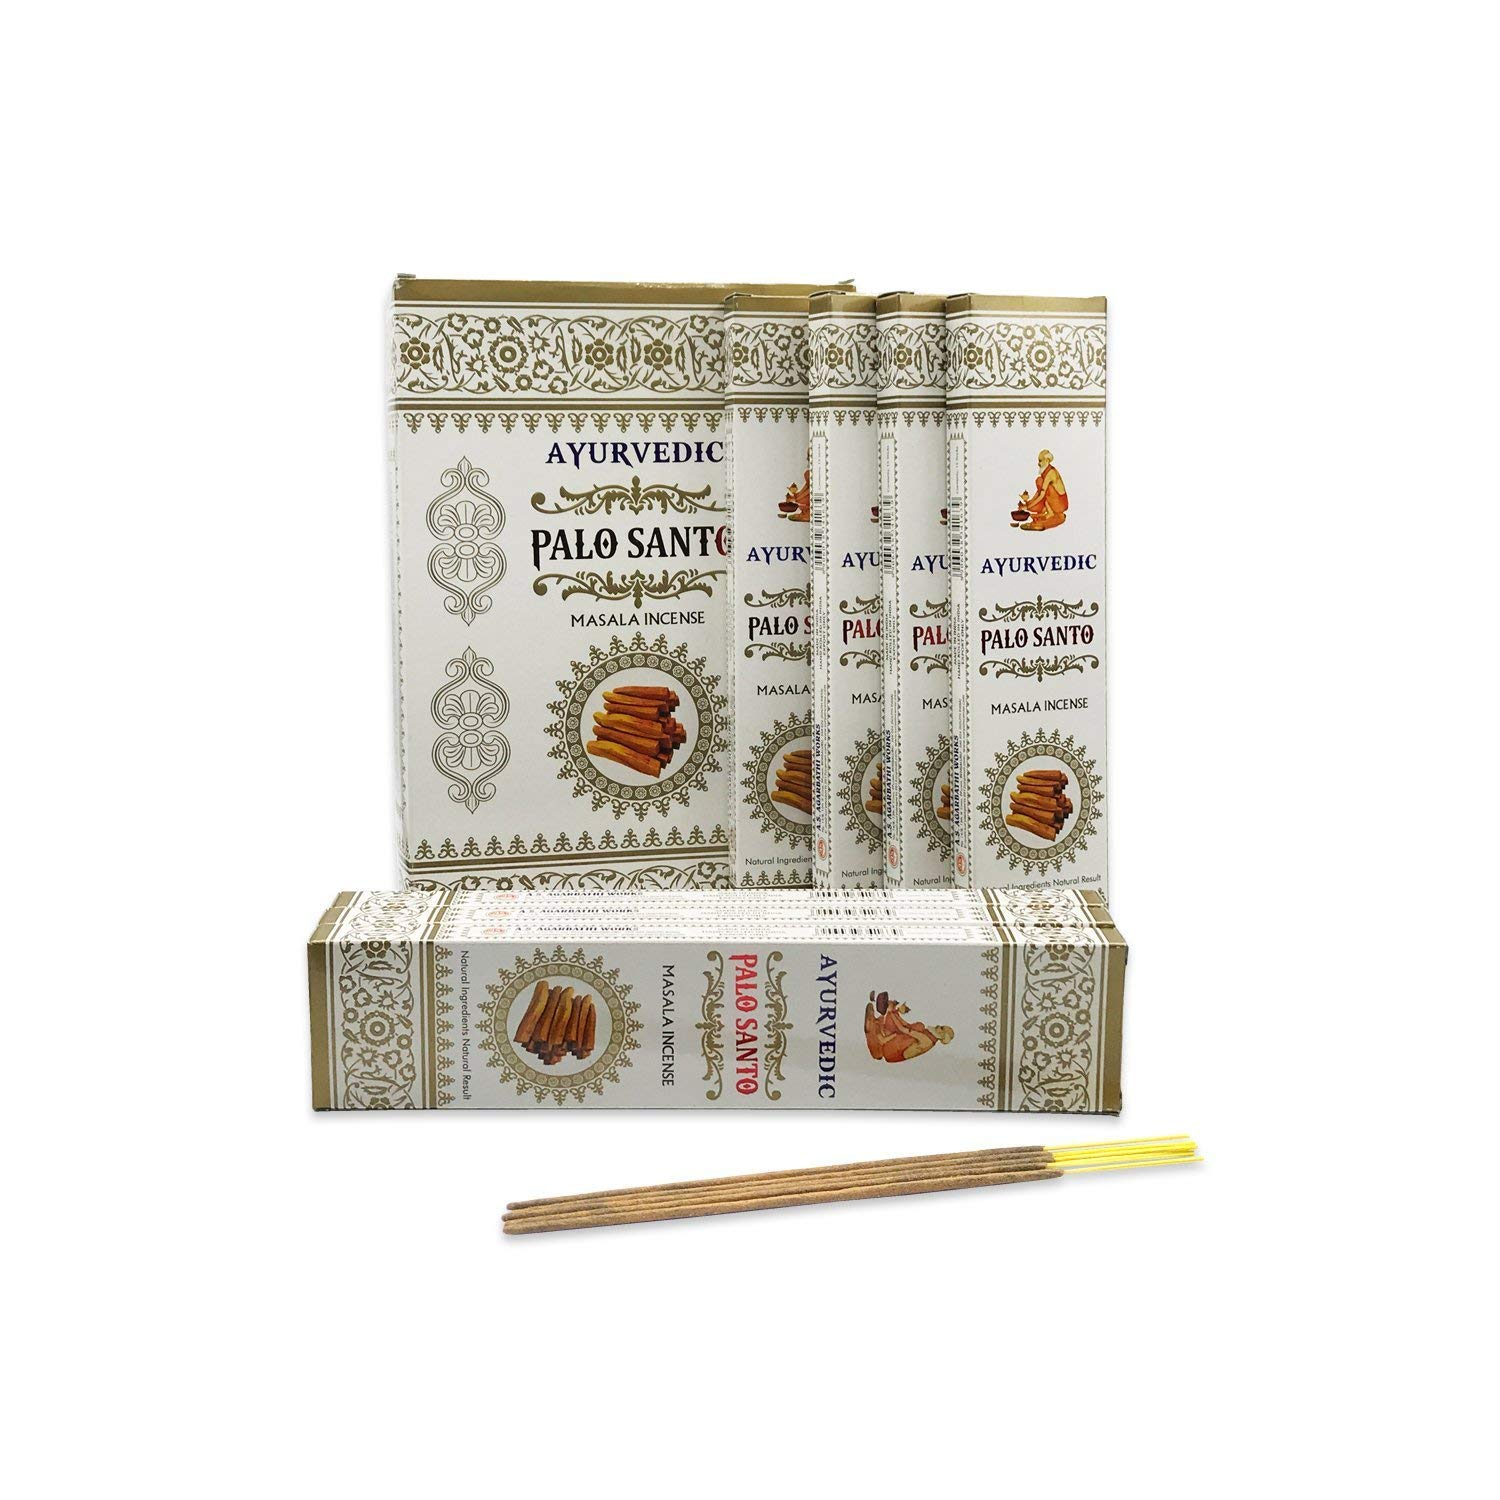 Ayurvedic Palo Santo (Holy Wood) Masala Incense | 12 Packs x 15 Sticks | Box of 180 Sticks | Premium and Export Quality Product A.S Agarbathi Works